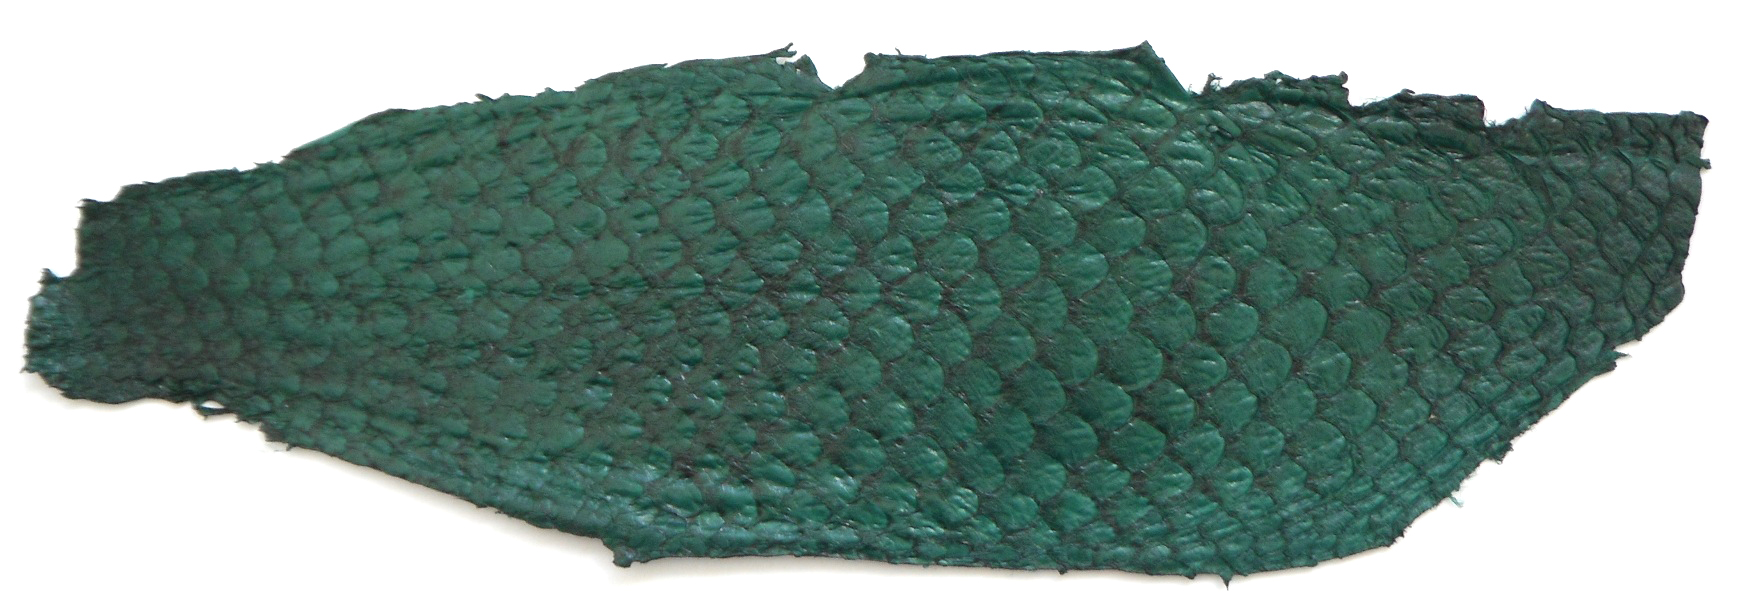 Eco friendly handmade soft suede Green Tilapia Fish Skin Leather